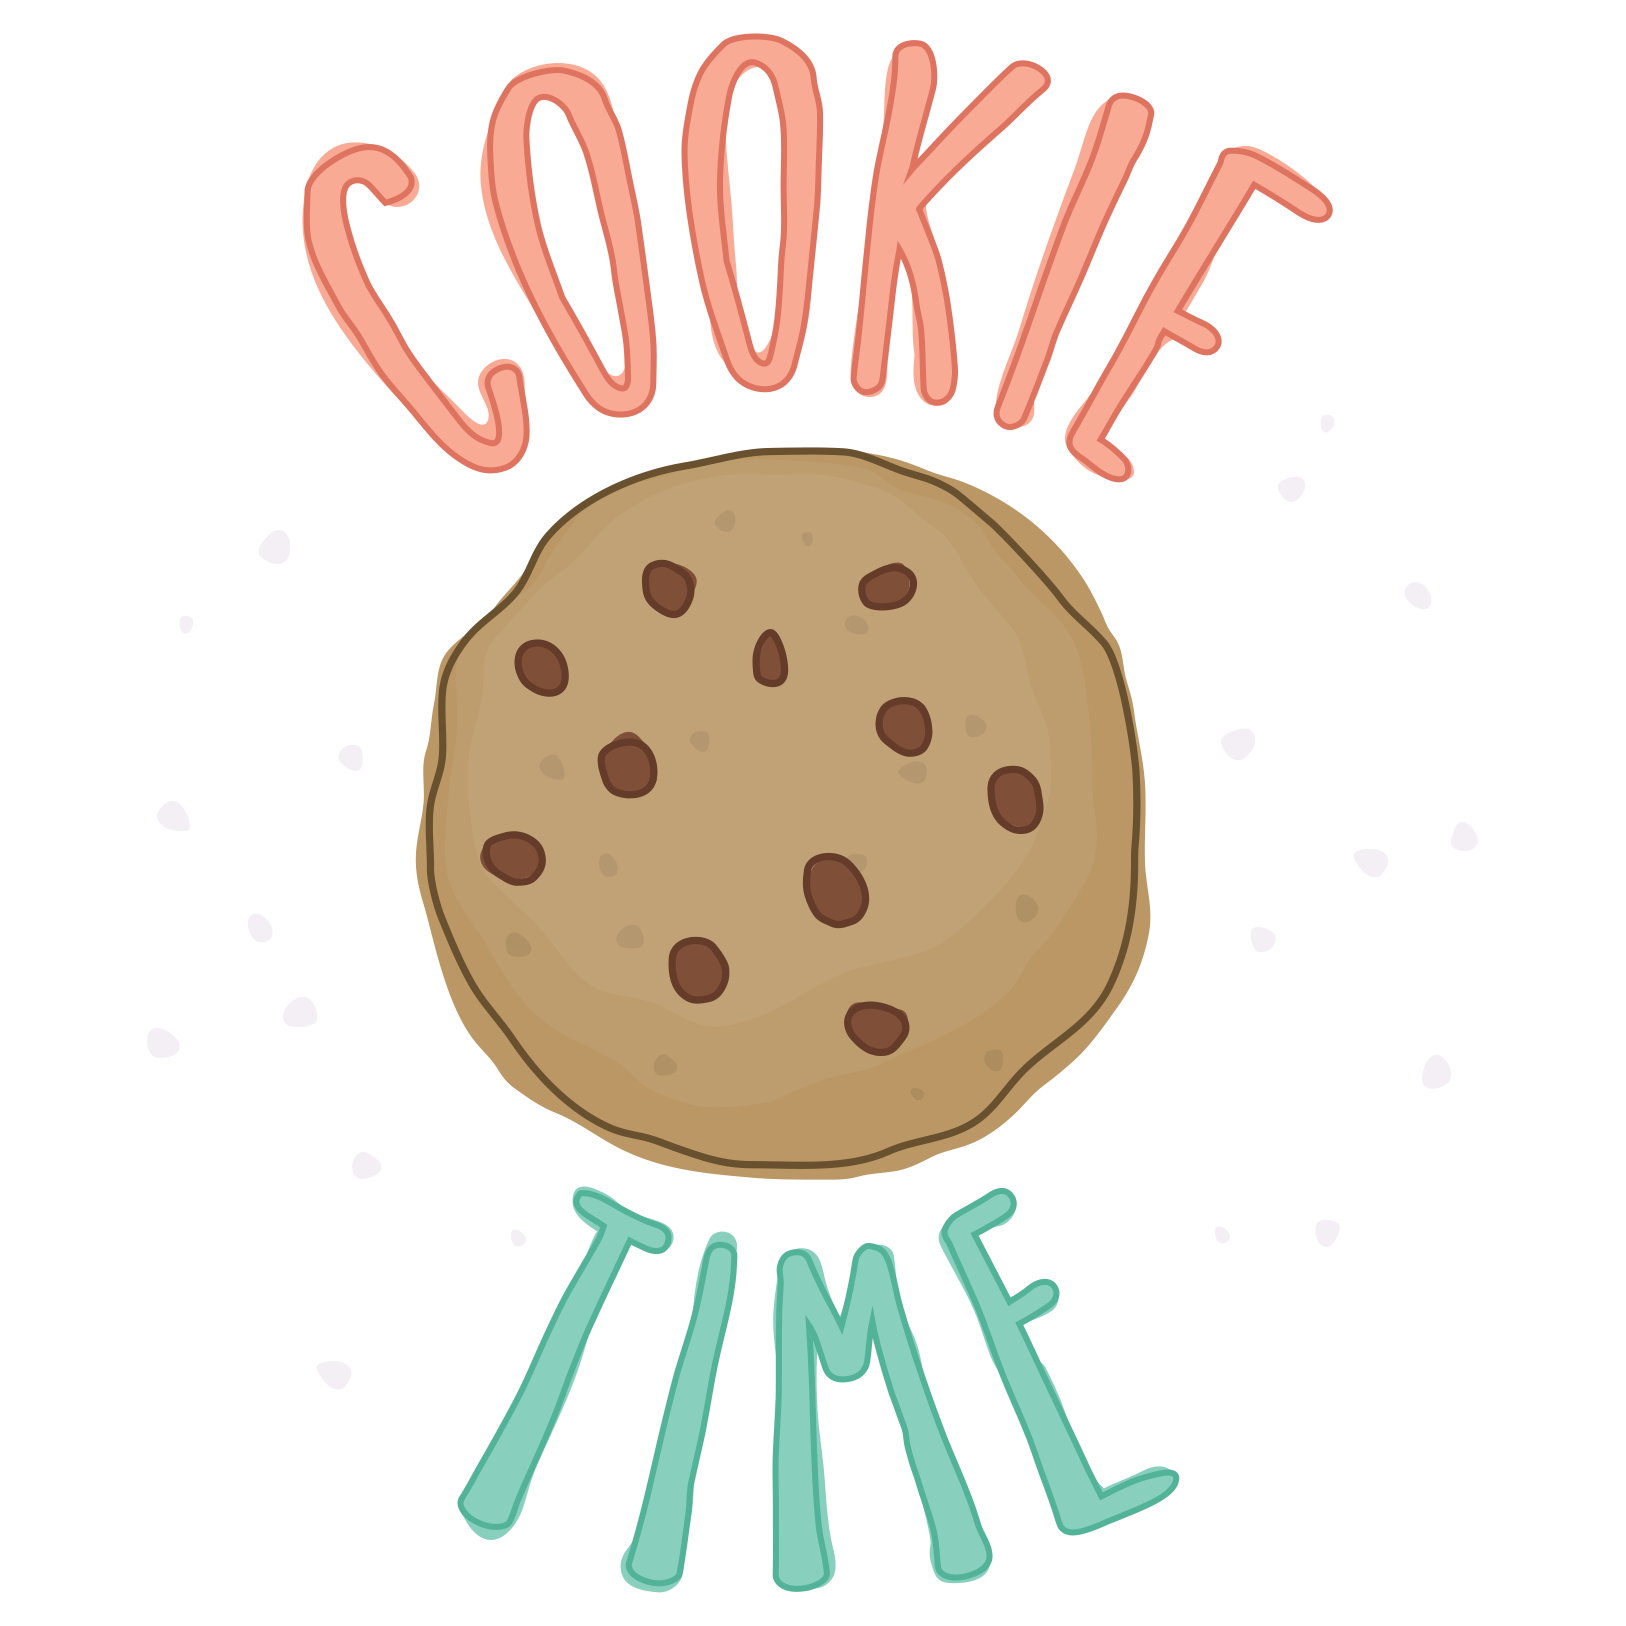 CookieTimePodcast